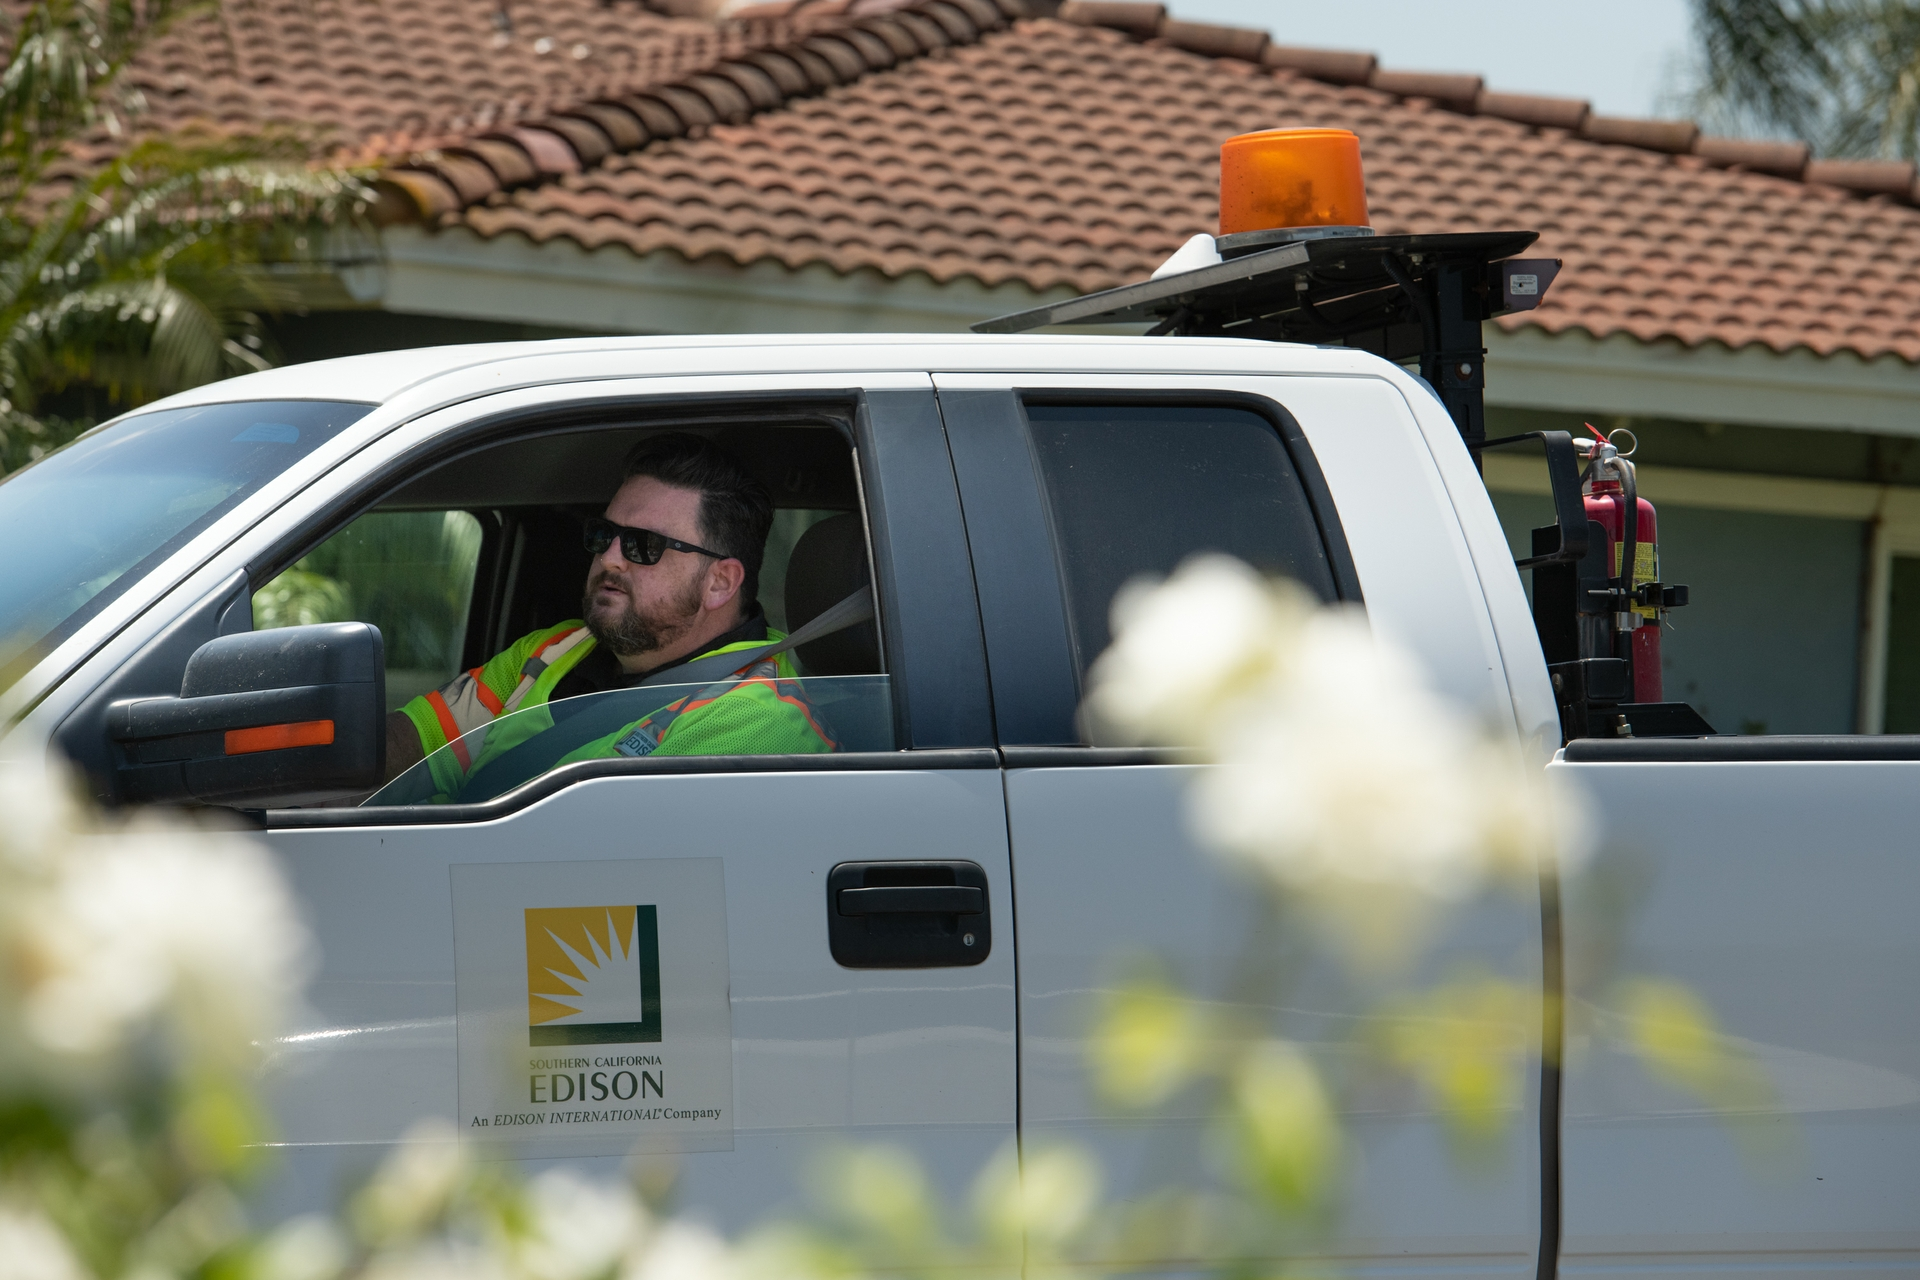 SCE estimates that in pursuing its 2030 fleet electrification goals, it will save more than 620,000 gallons of fuel annually and eliminate close to 6,000 metric tons of greenhouse gas emissions a year.